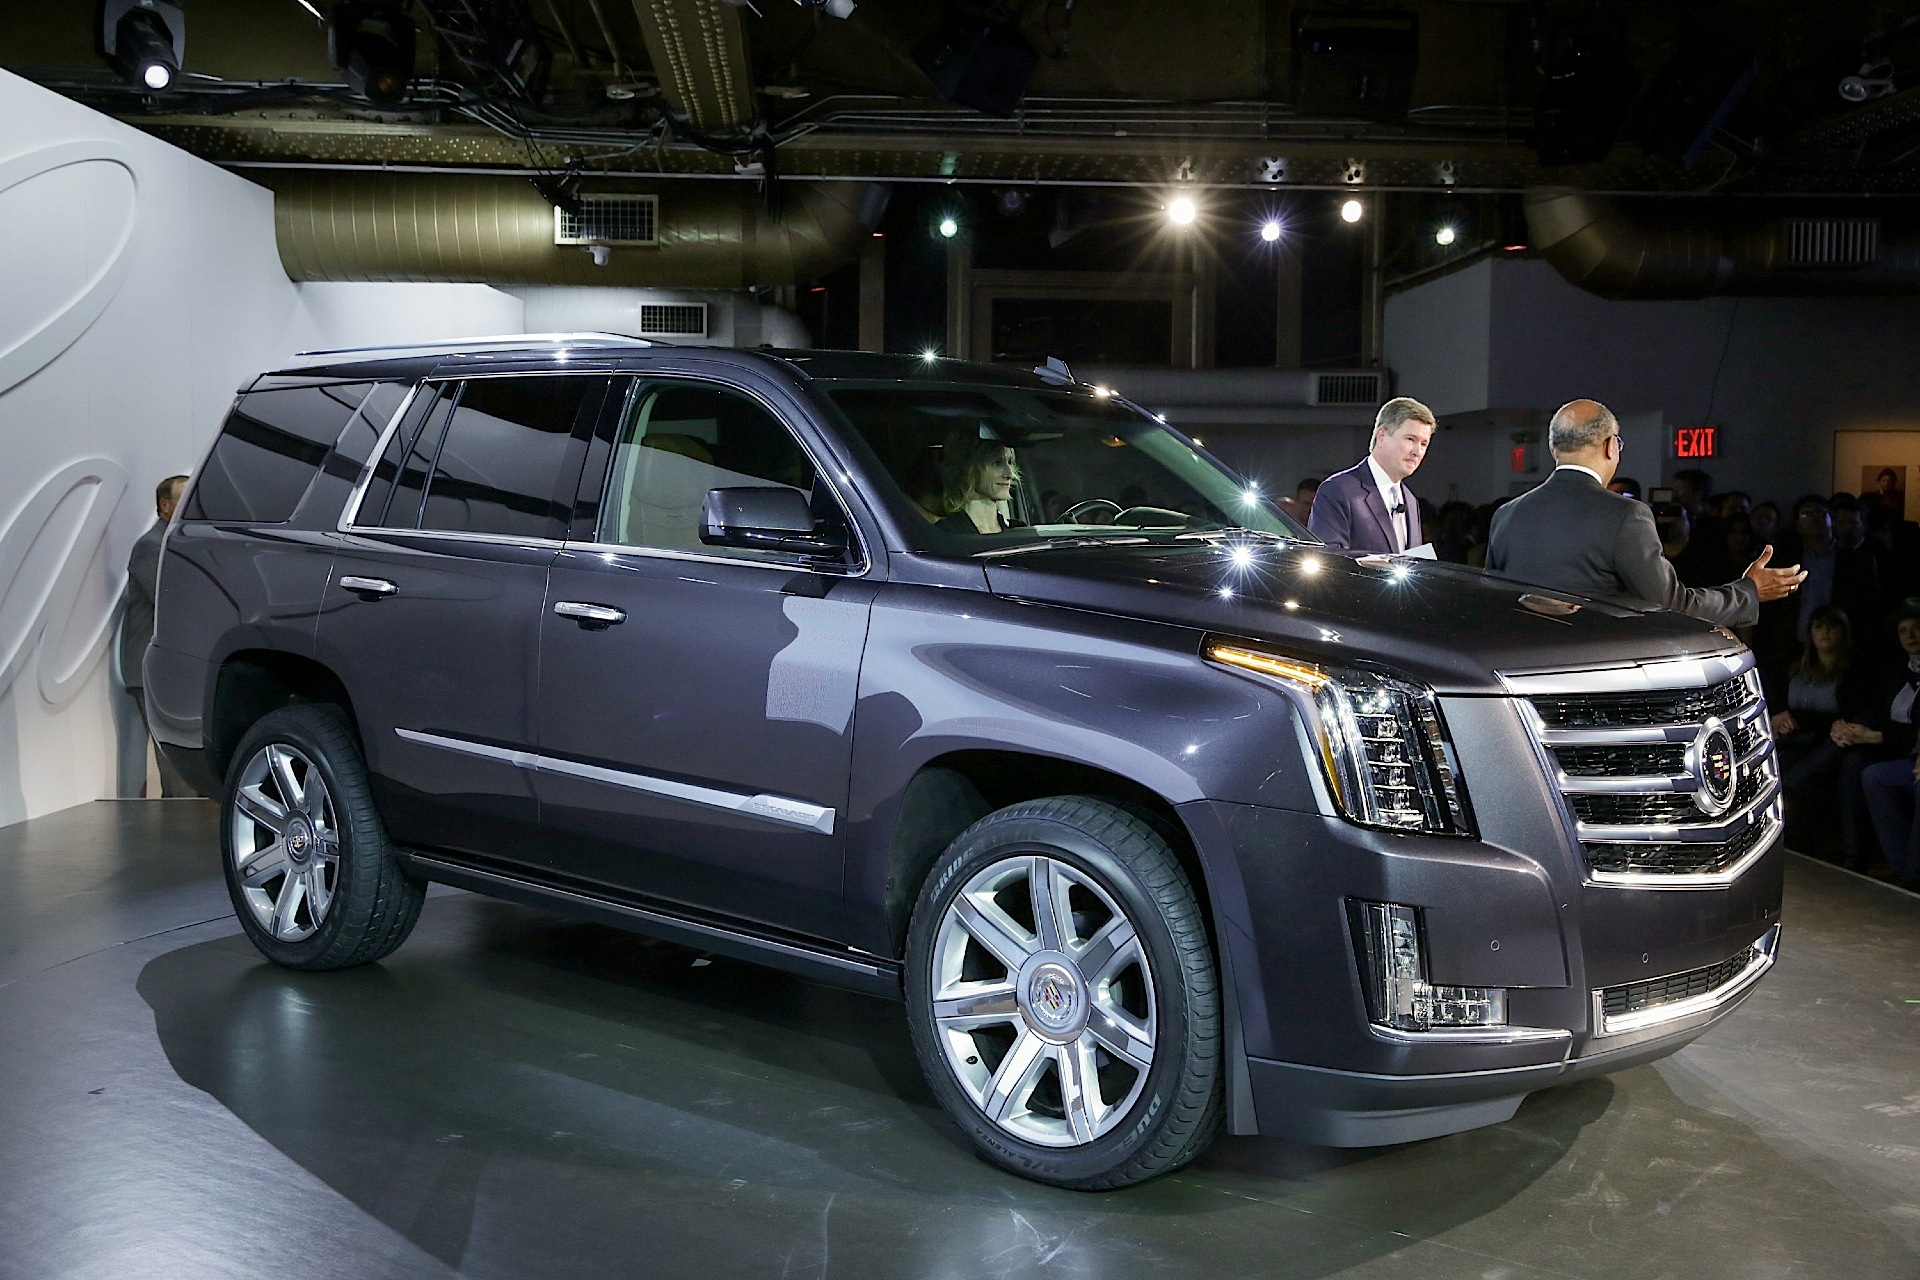 Toyota Of Bowling Green >> CADILLAC Escalade specs & photos - 2014, 2015, 2016, 2017, 2018, 2019 - autoevolution